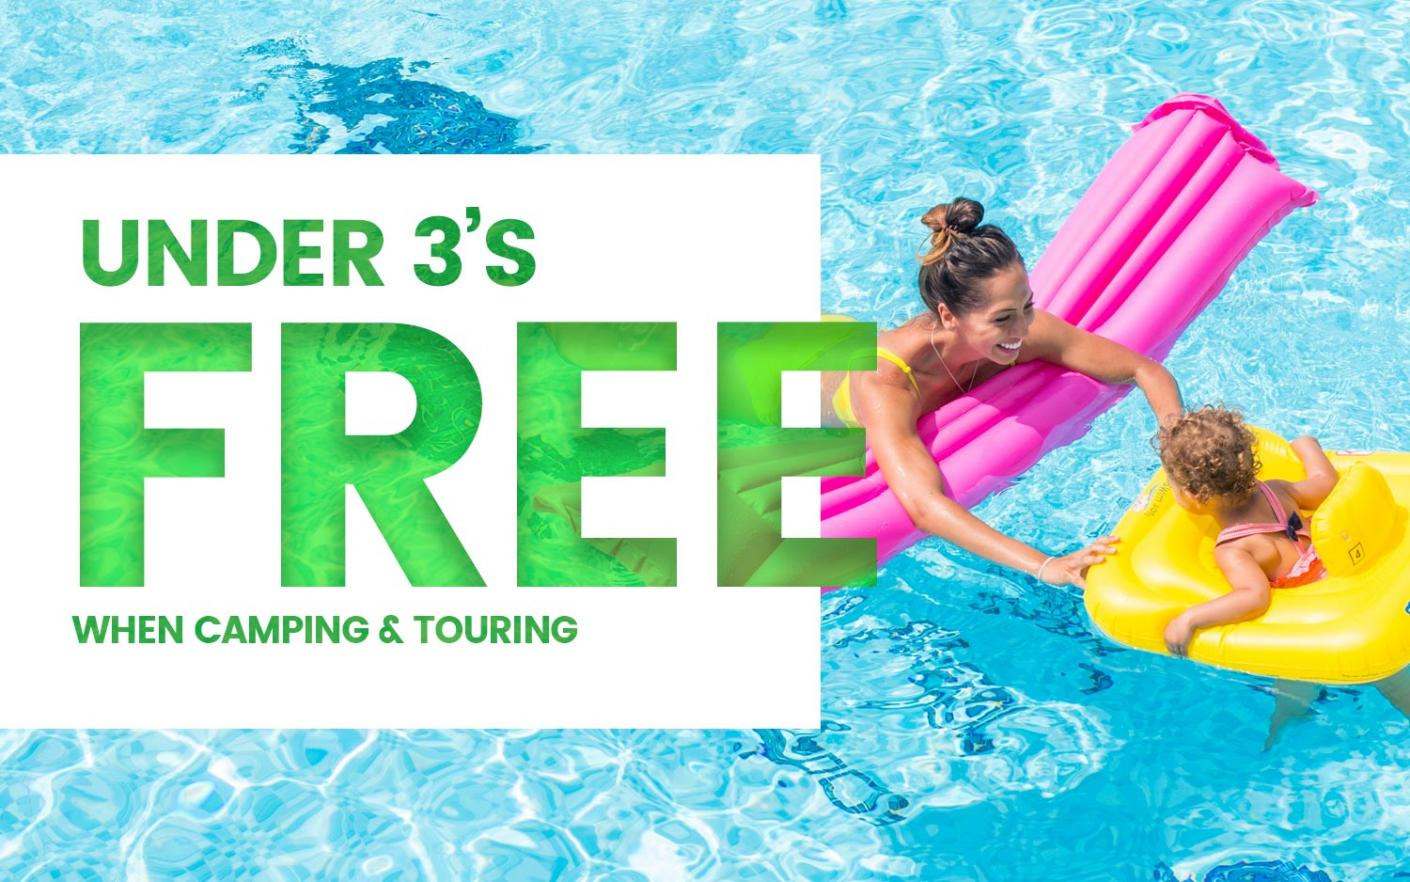 Under threes stay for free when camping and touring